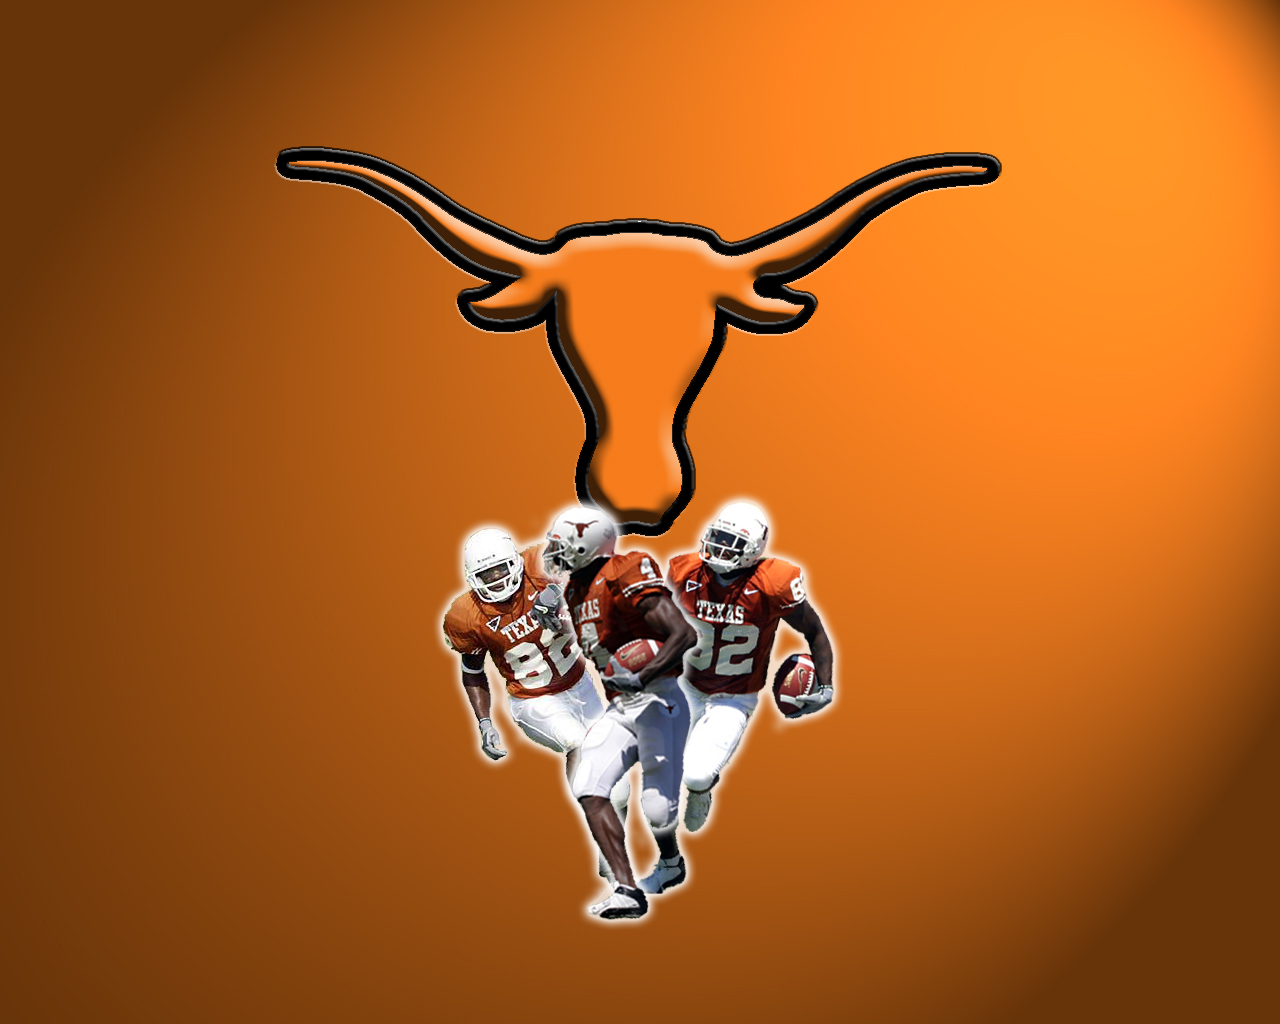 Texas Longhorns 1280x1024